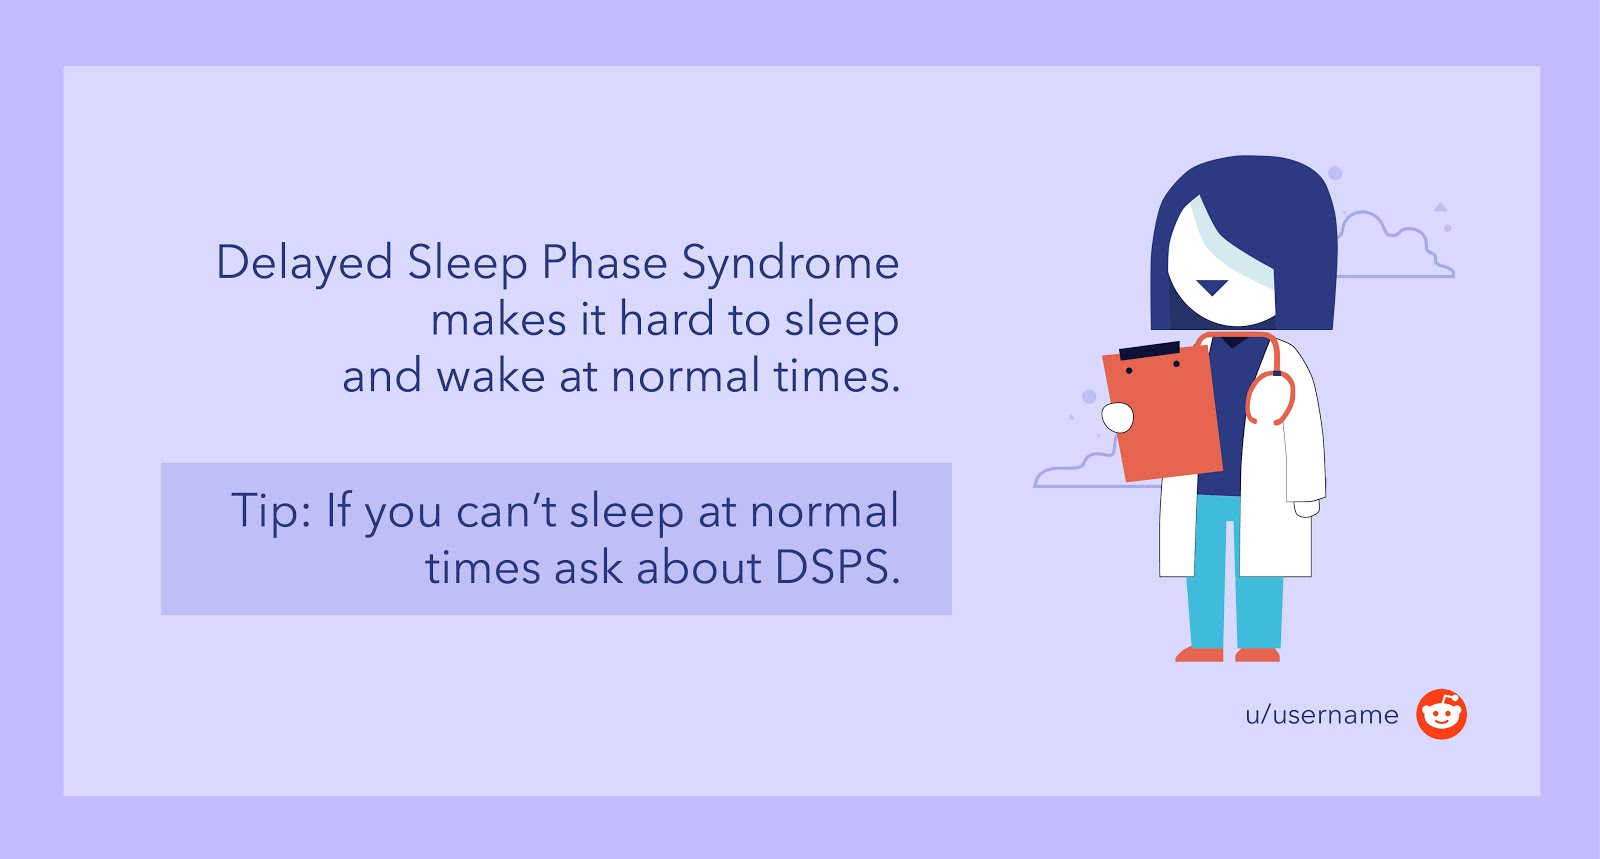 If you have tried everything to go to sleep at a normal time, talk to your doctor about DSPS